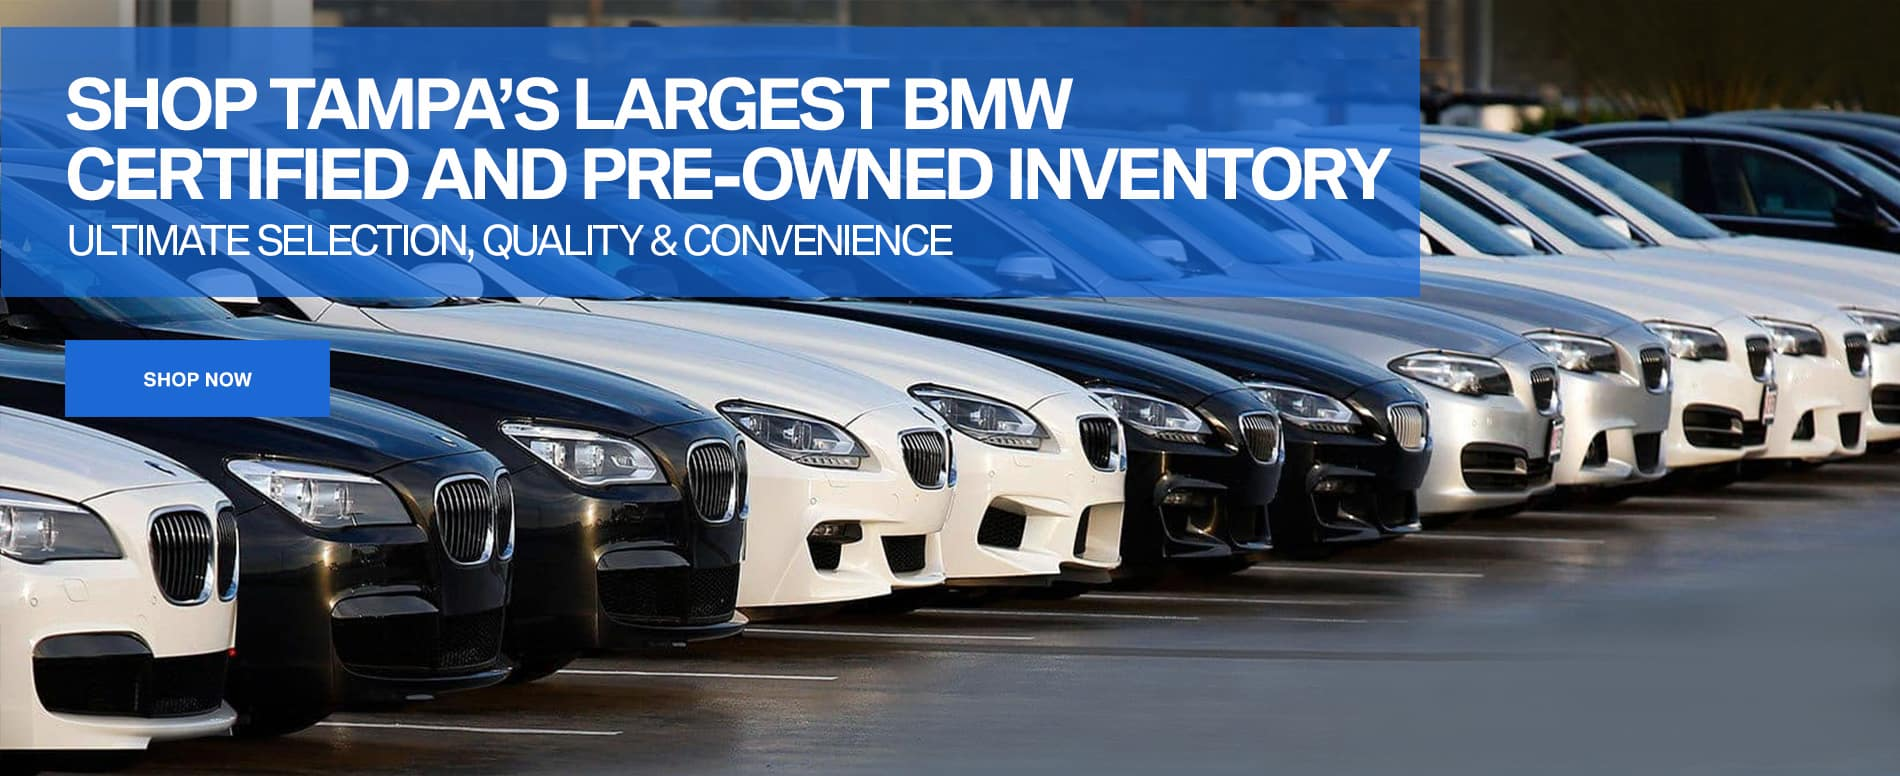 BMW Pre-Owned Inventory